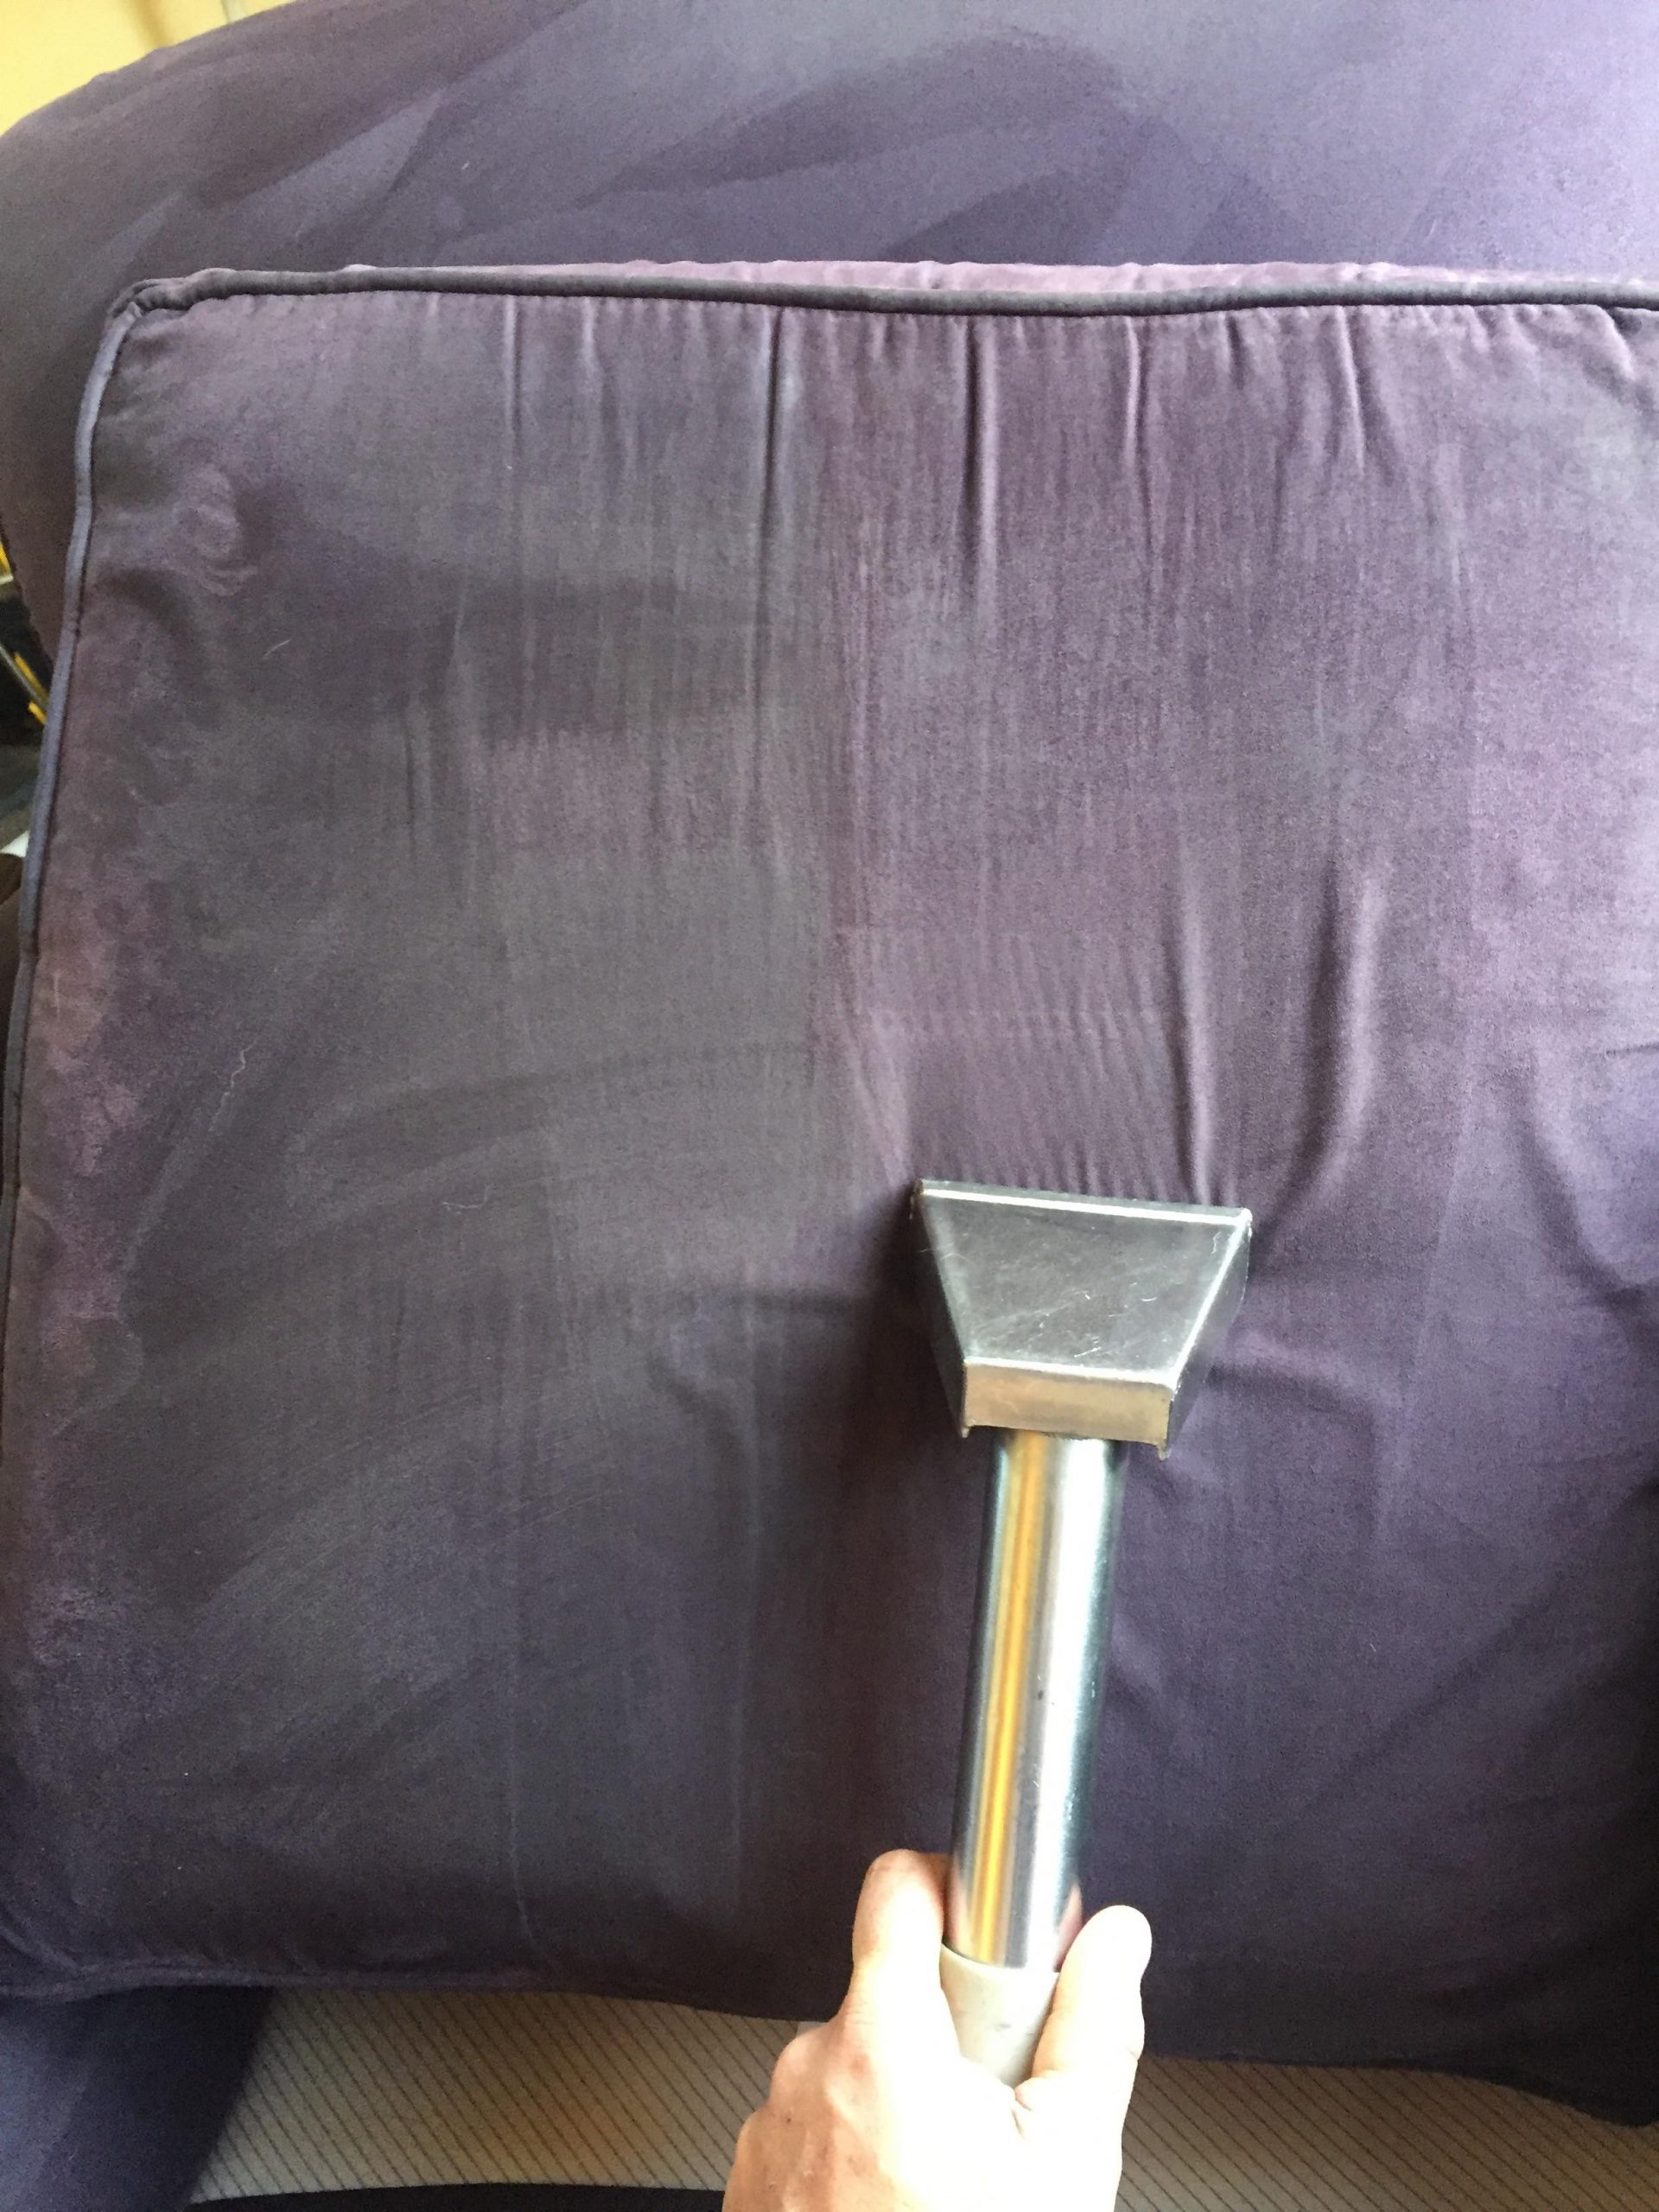 Does Cleaning Your Upholstery Help It Last Longer?